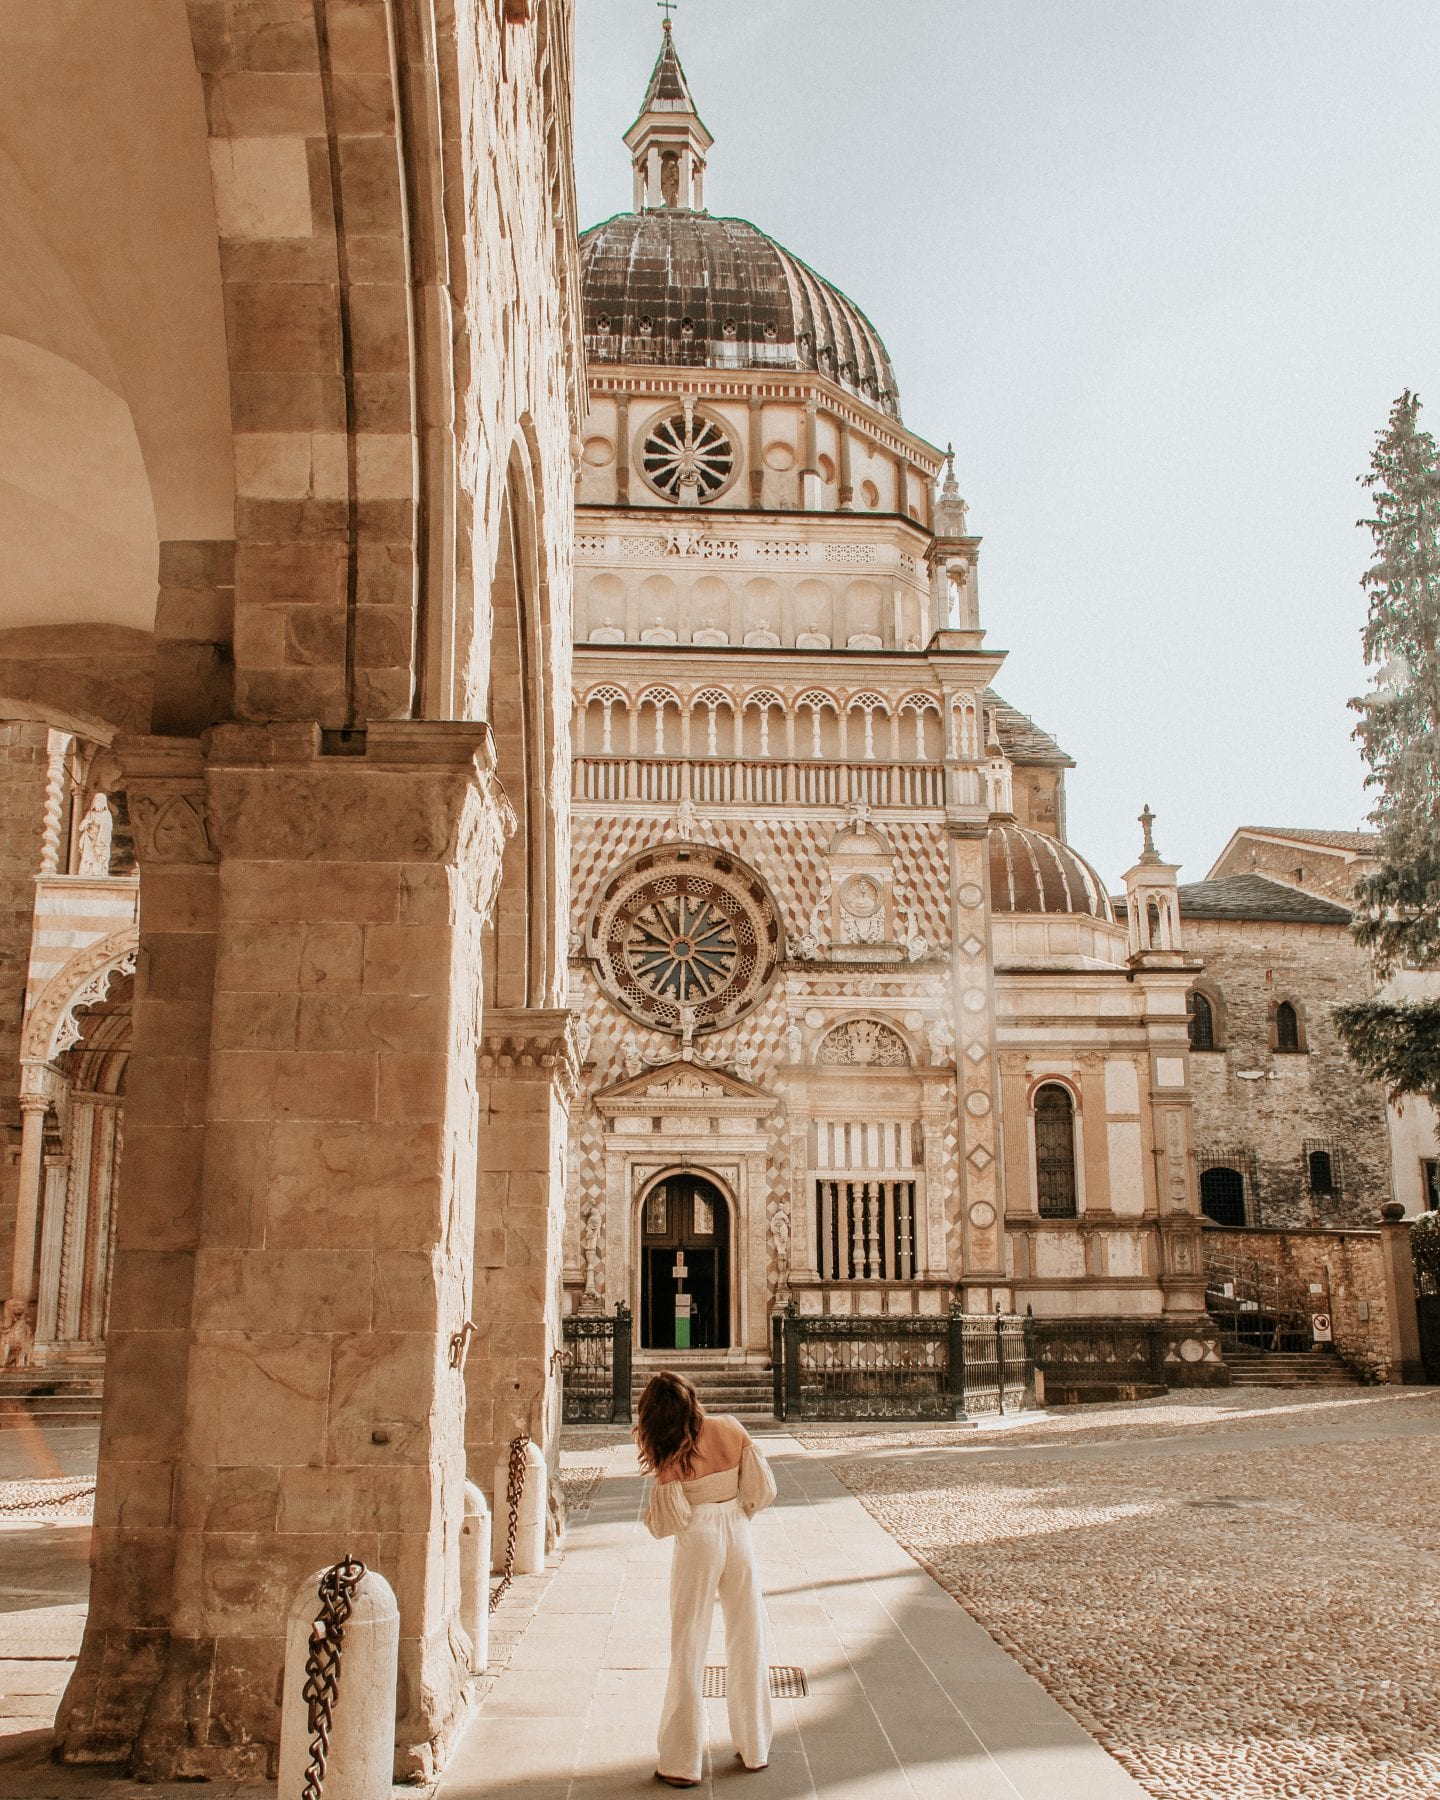 Photo of girl in front of Cappella Colleoni, a very decorated religious monument in Bergamo, Italy